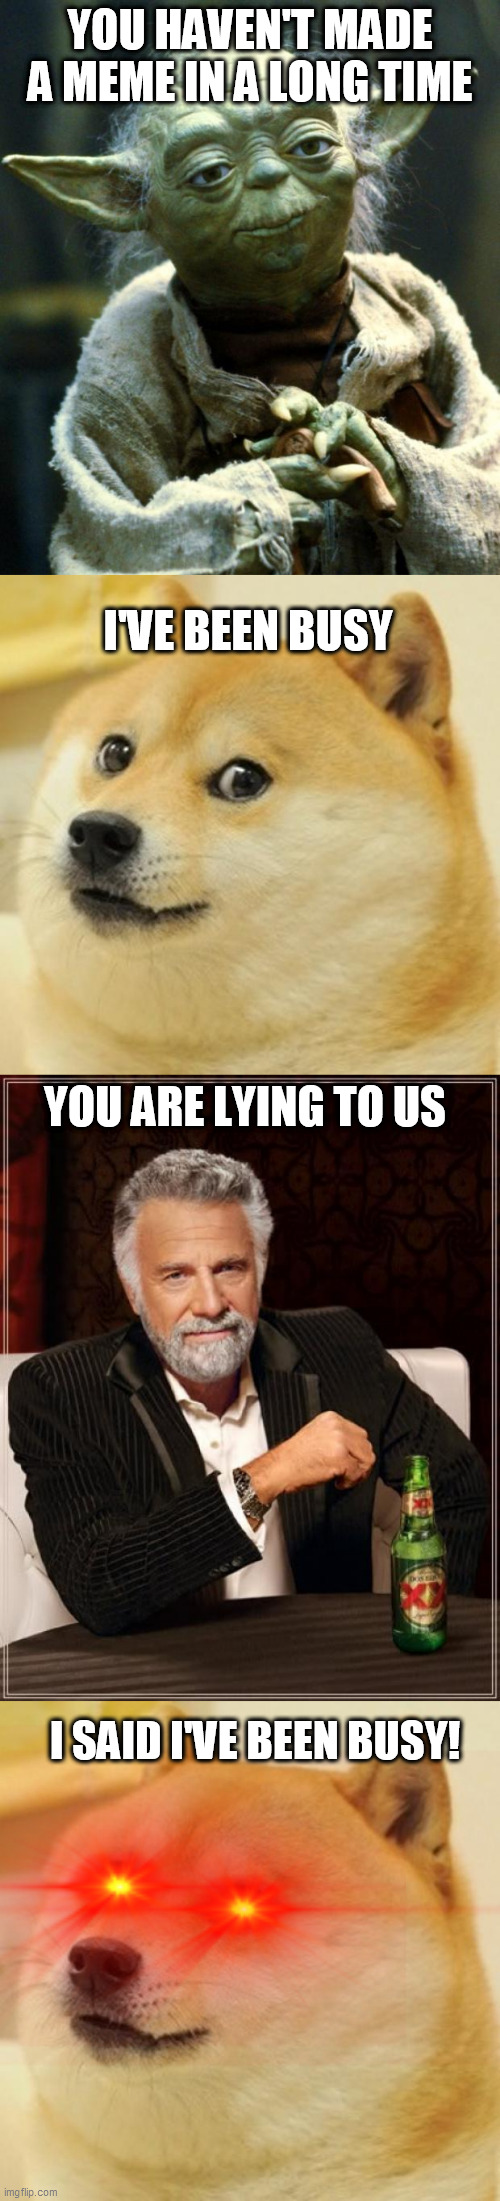 people who switched to tictok |  YOU HAVEN'T MADE A MEME IN A LONG TIME; I'VE BEEN BUSY; YOU ARE LYING TO US; I SAID I'VE BEEN BUSY! | image tagged in memes,the most interesting man in the world,doge,star wars yoda | made w/ Imgflip meme maker